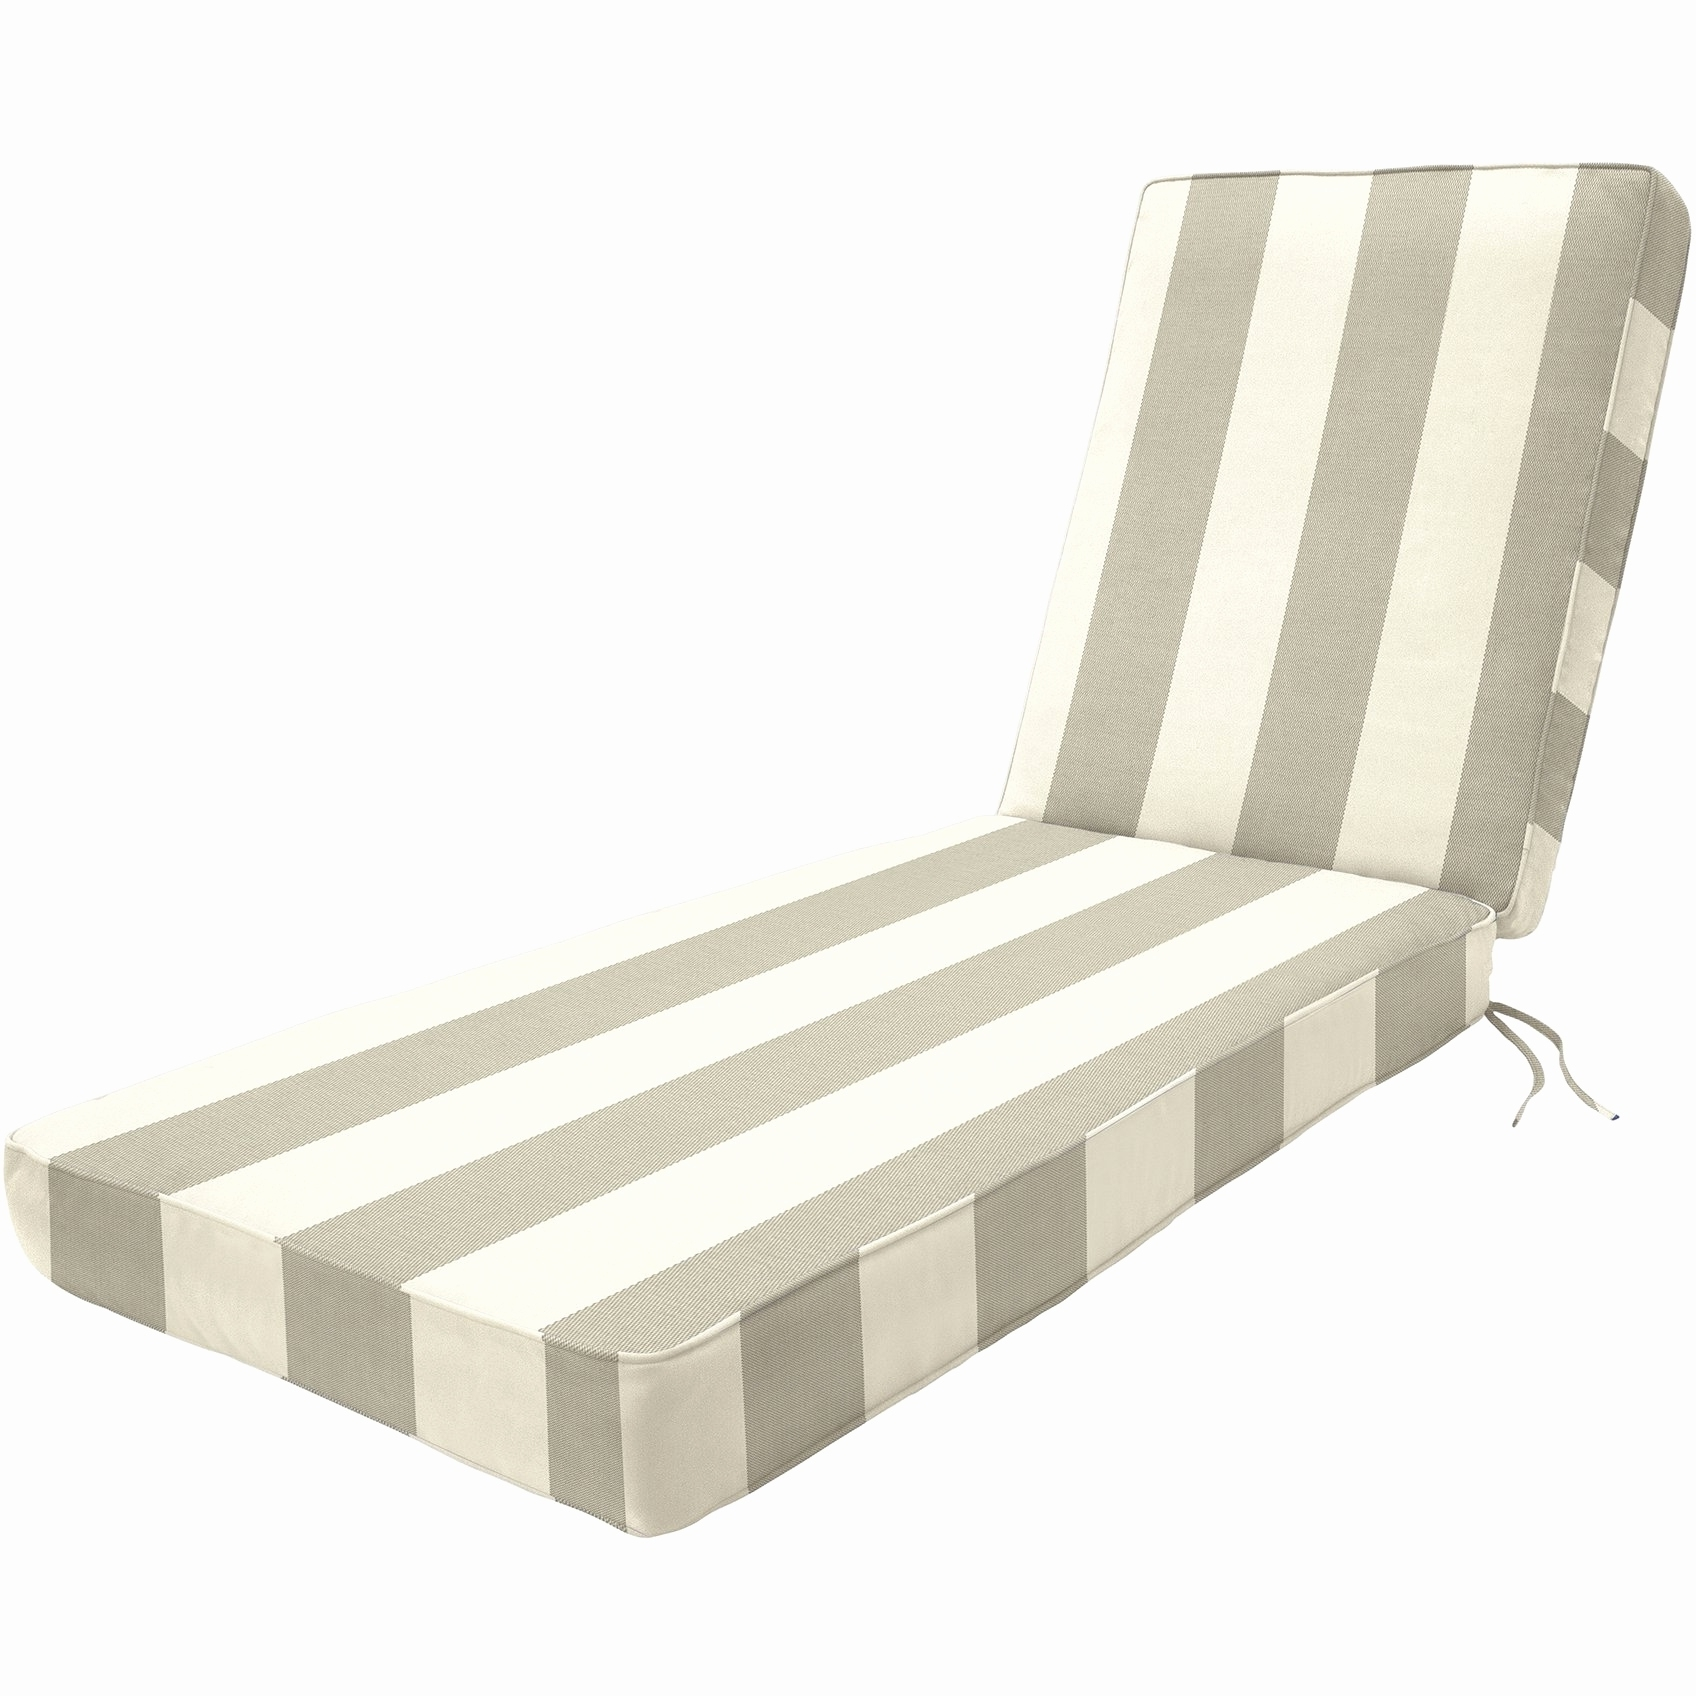 Popular Sunbrella Chaise Lounge Cushions For 30 Unique Cheap Outdoor Lounge Chairs Pictures (30 Photos) (View 15 of 15)